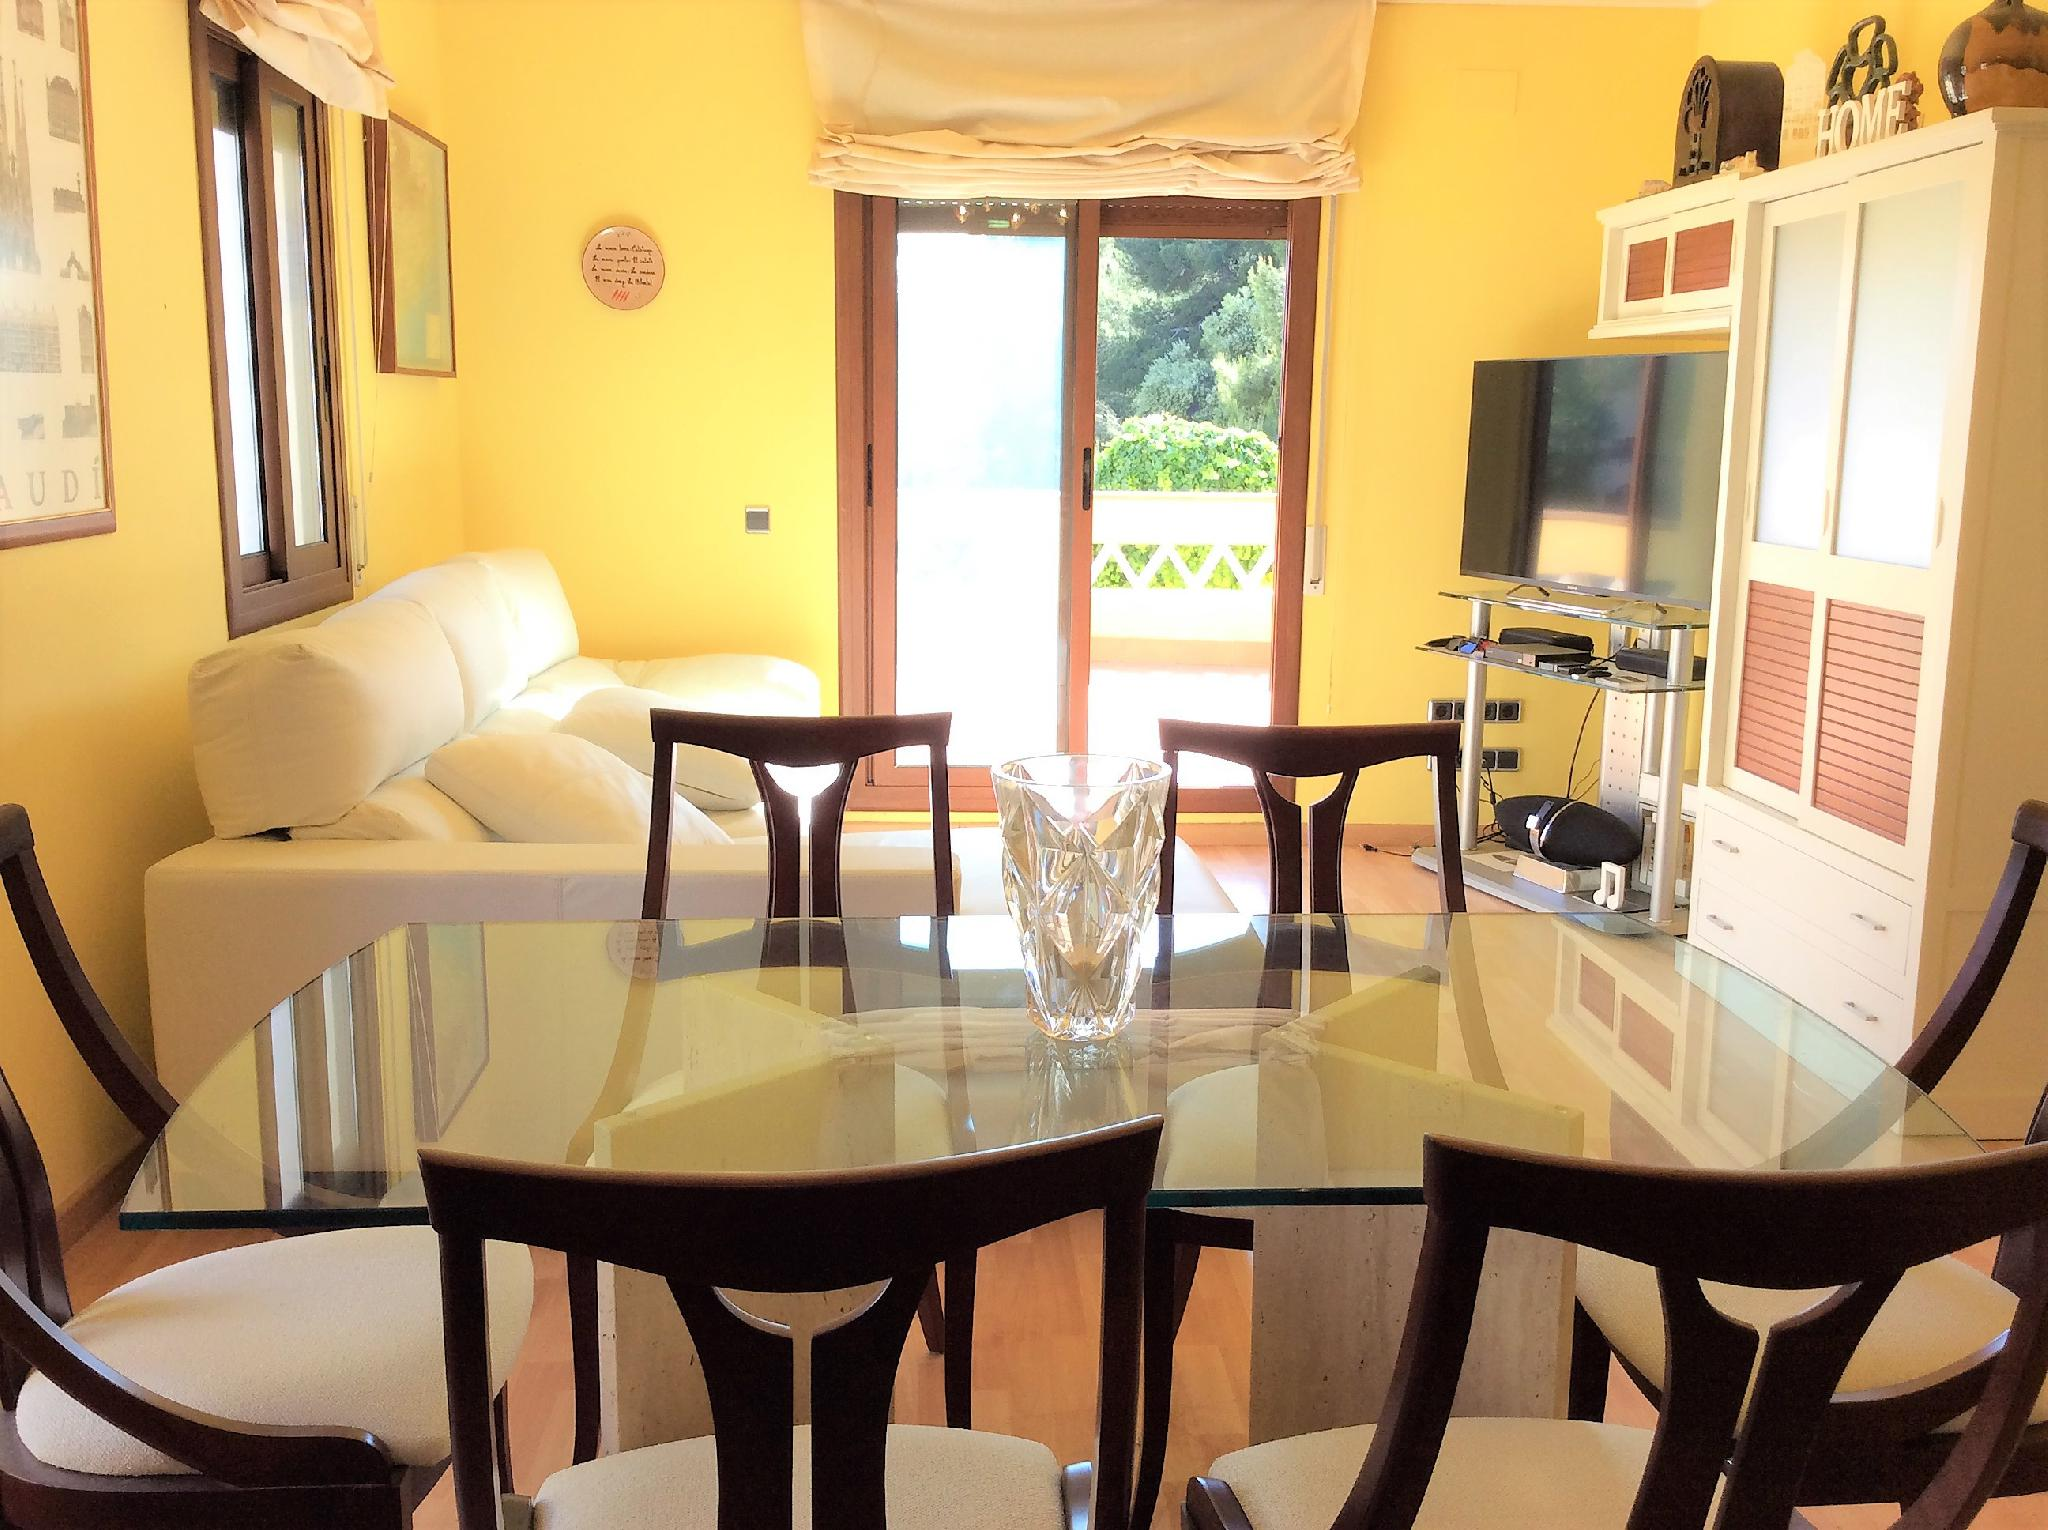 186298 - Zona residencial Ribes Roges